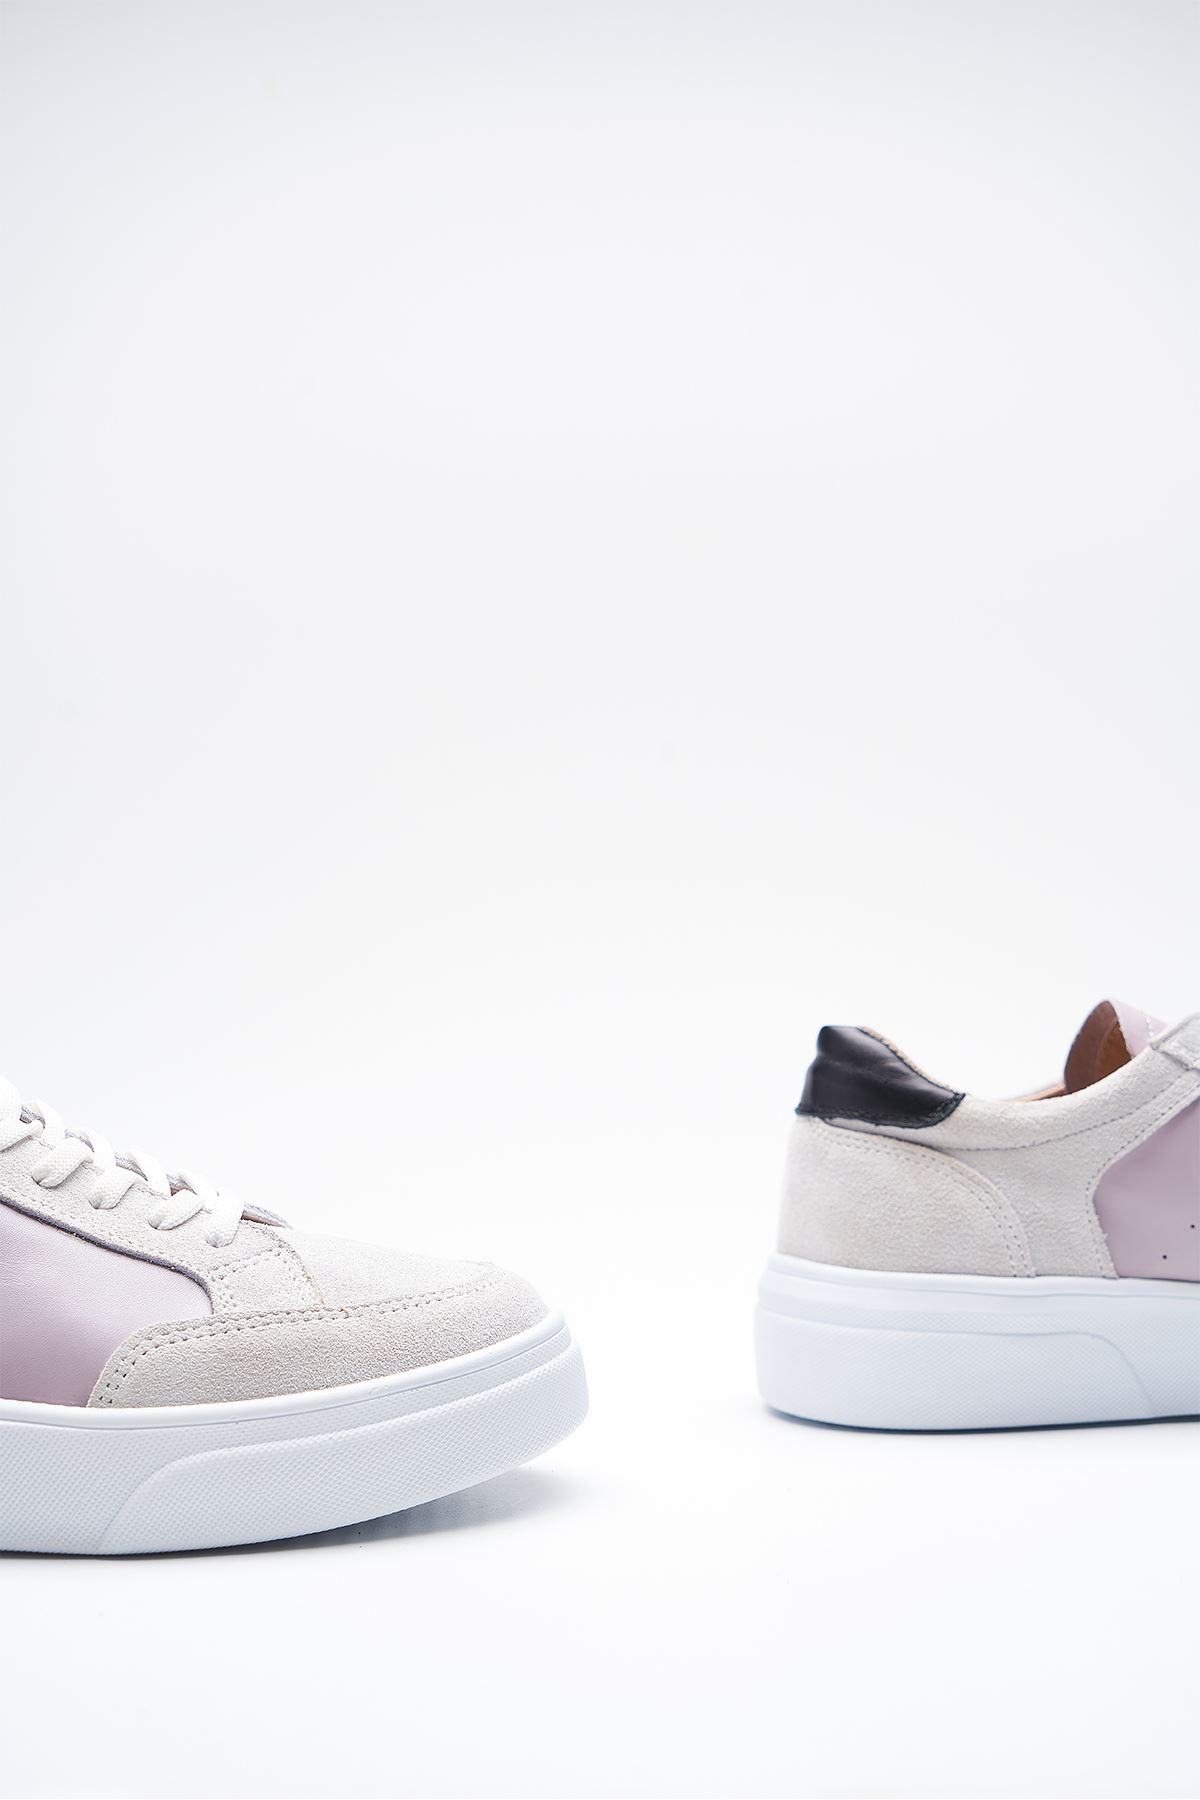 Hedwig White Grey Genuine Leather Women Sneakers